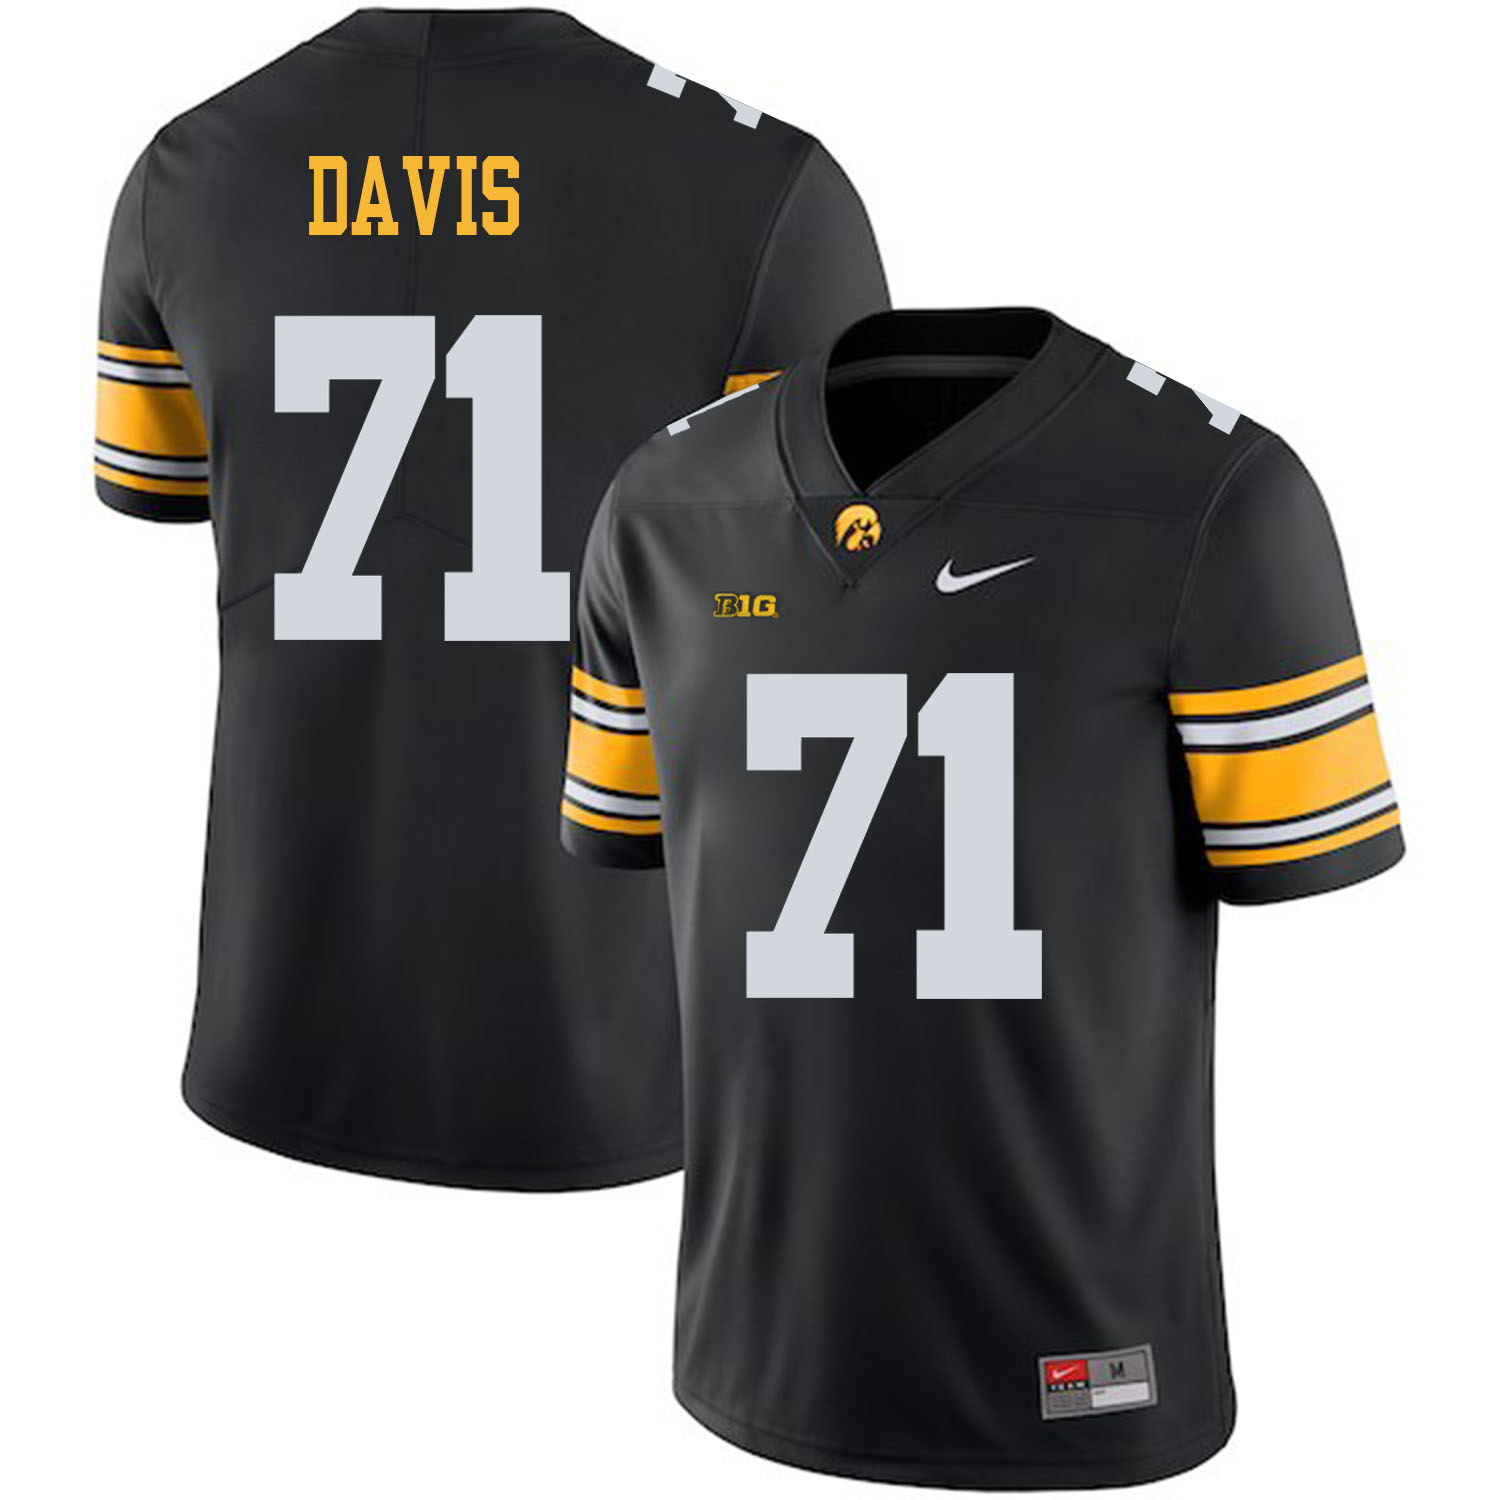 Iowa Hawkeyes 71 Carl Davis Black College Football Jersey